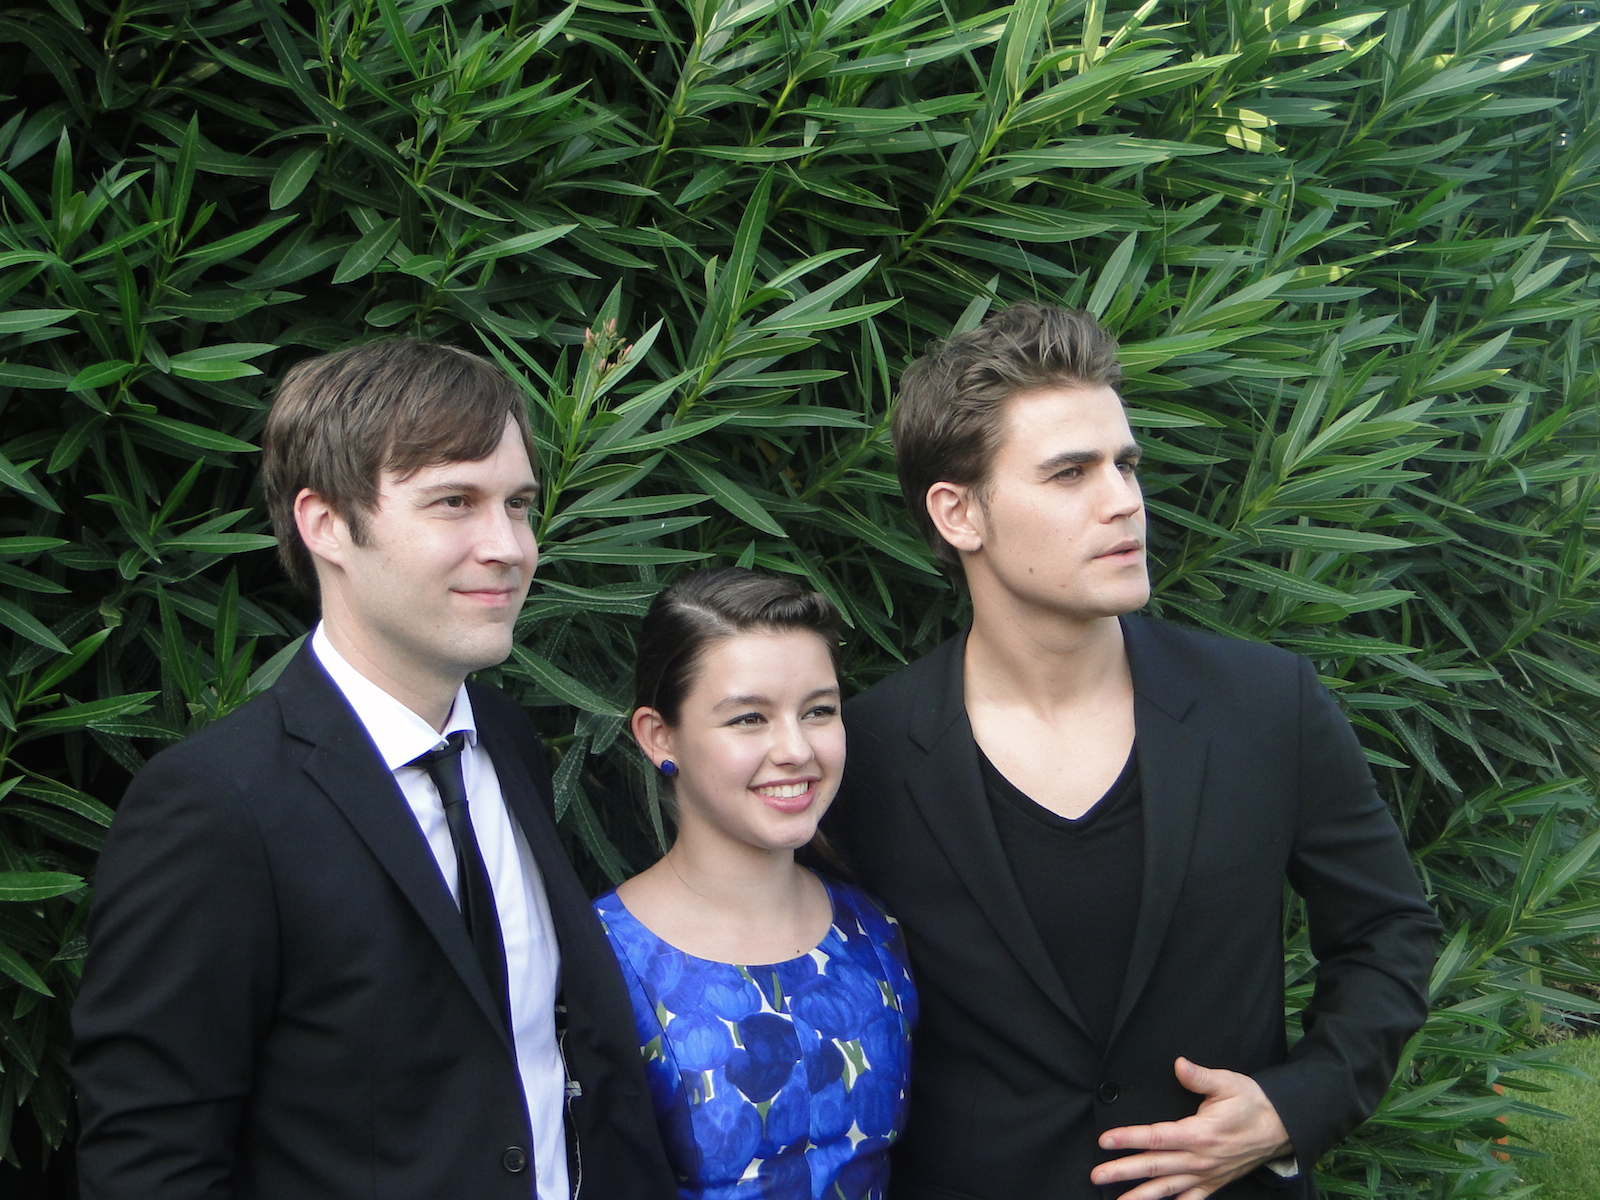 Before I Disappear: Paul Wesley, Fatima Ptacek e Shawn Christensen insieme al photocall del film di Venezia 71